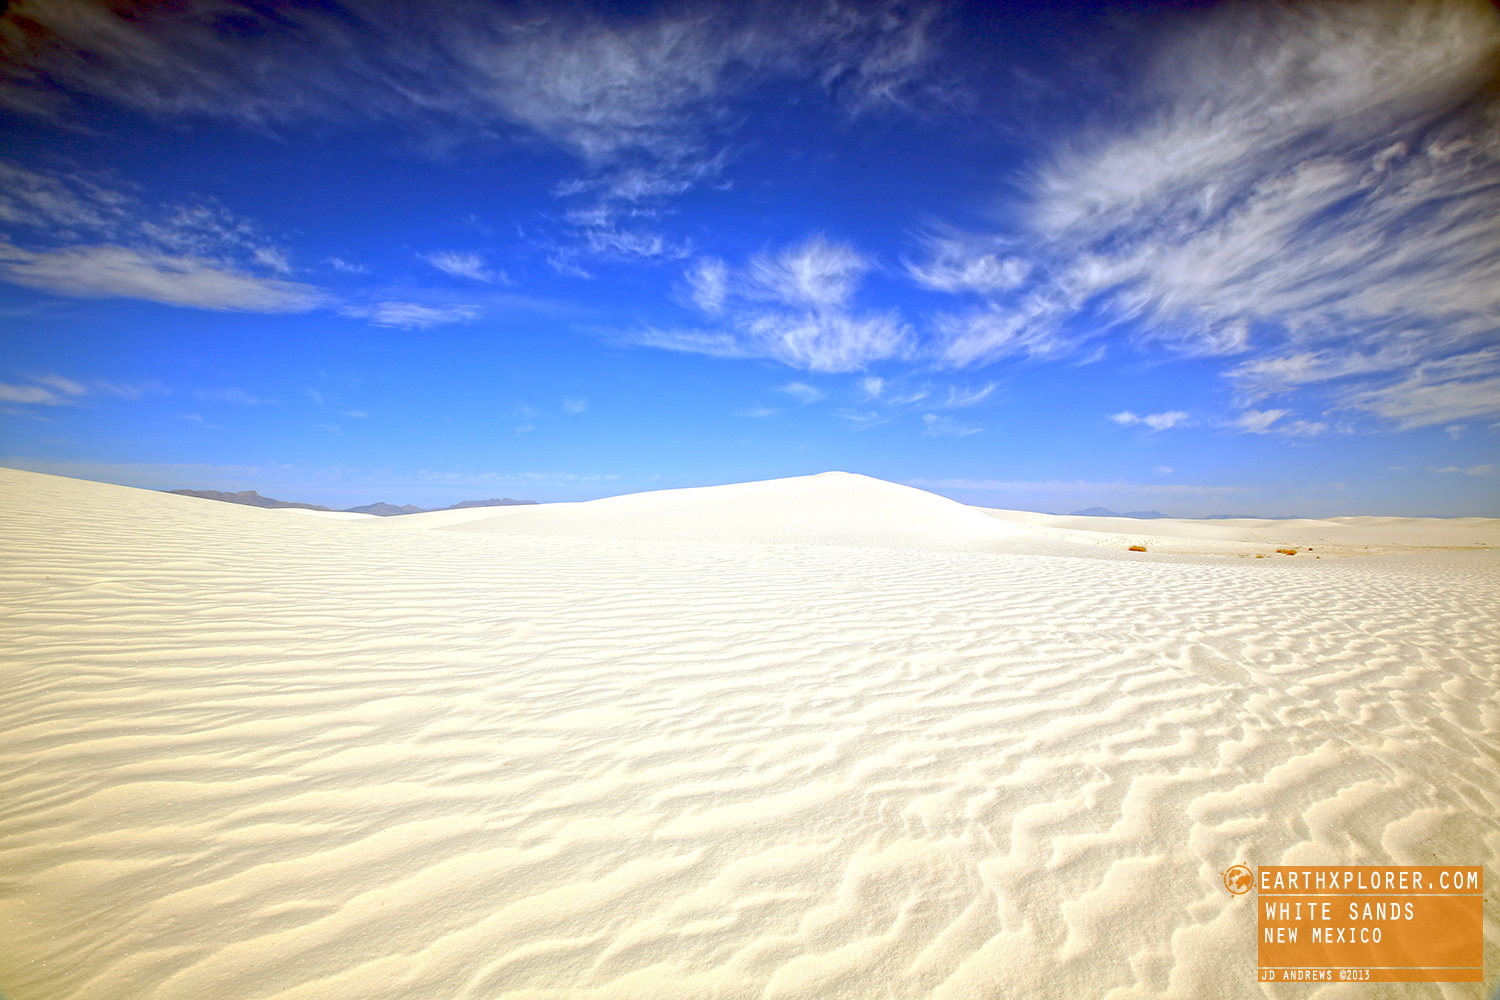 The world's largest gypsum sand dune field - 275 square miles.